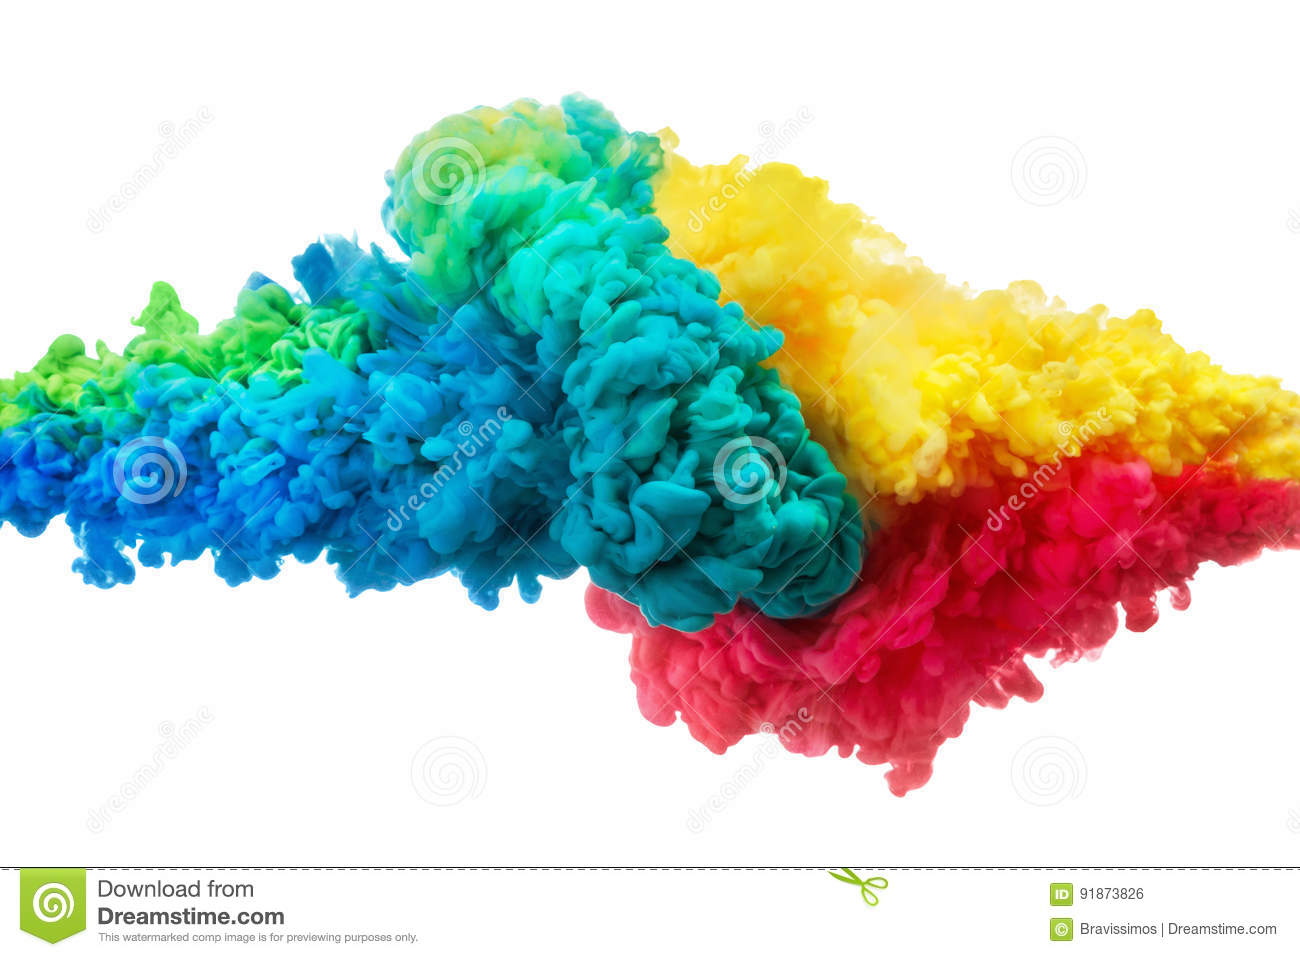 Download Colorful Acrylic Ink In Water Isolated On White. Abstract Background. Color Explosion Stock Photo - Image of pigment, swirl: 91873826